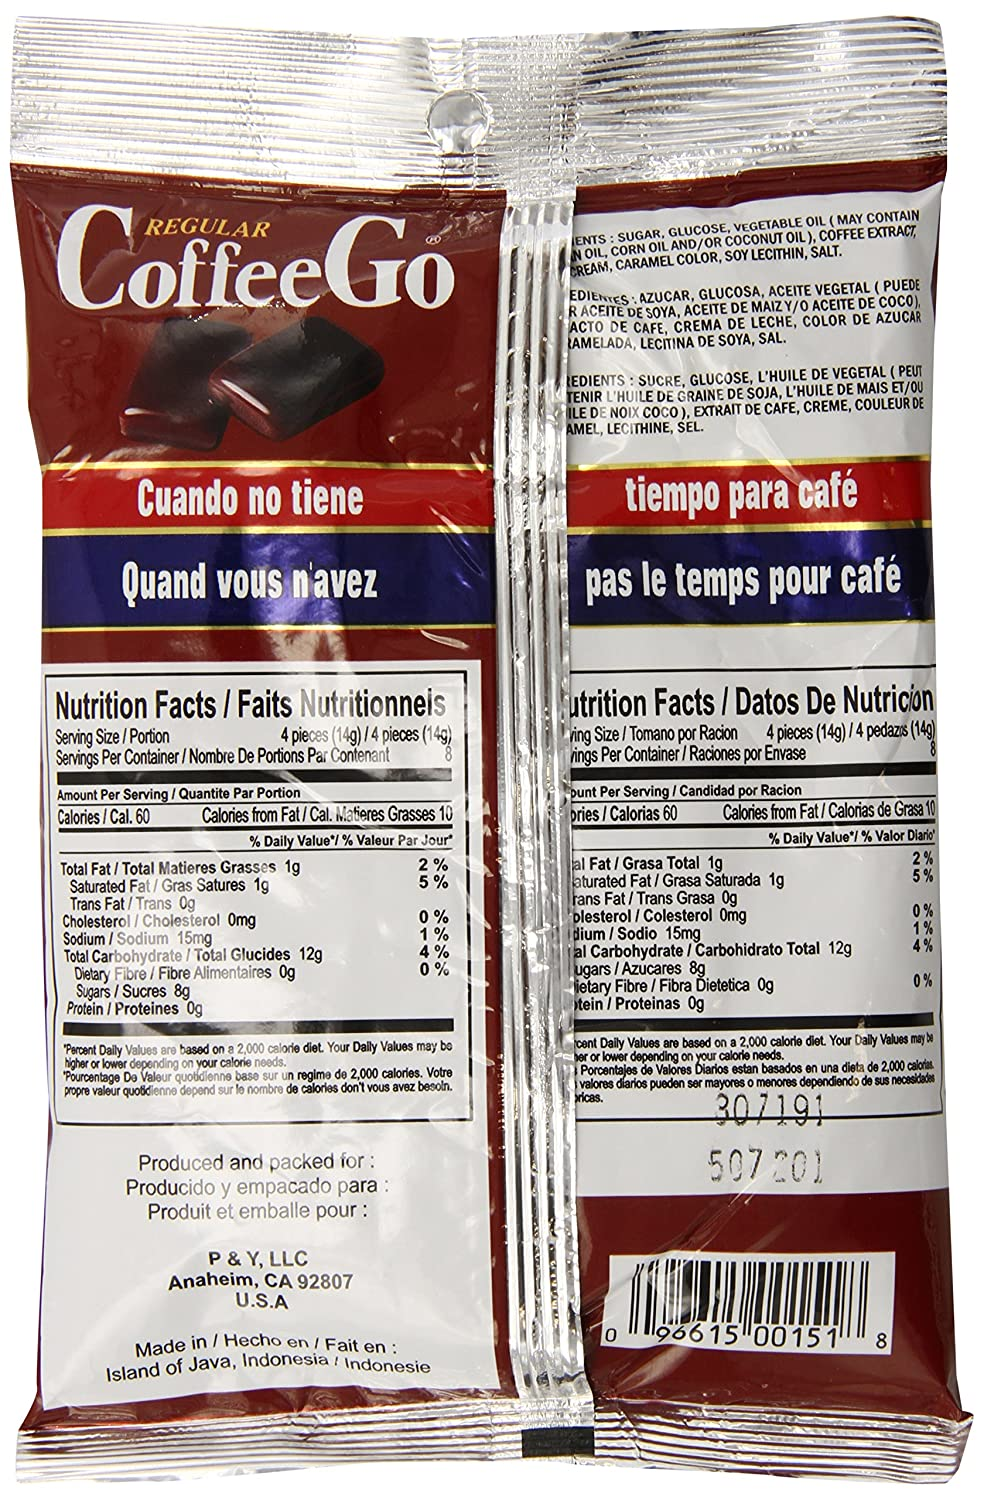 CoffeeGo Coffee Candy, Regular, 4.05 Ounce: Amazon.com: Grocery & Gourmet Food